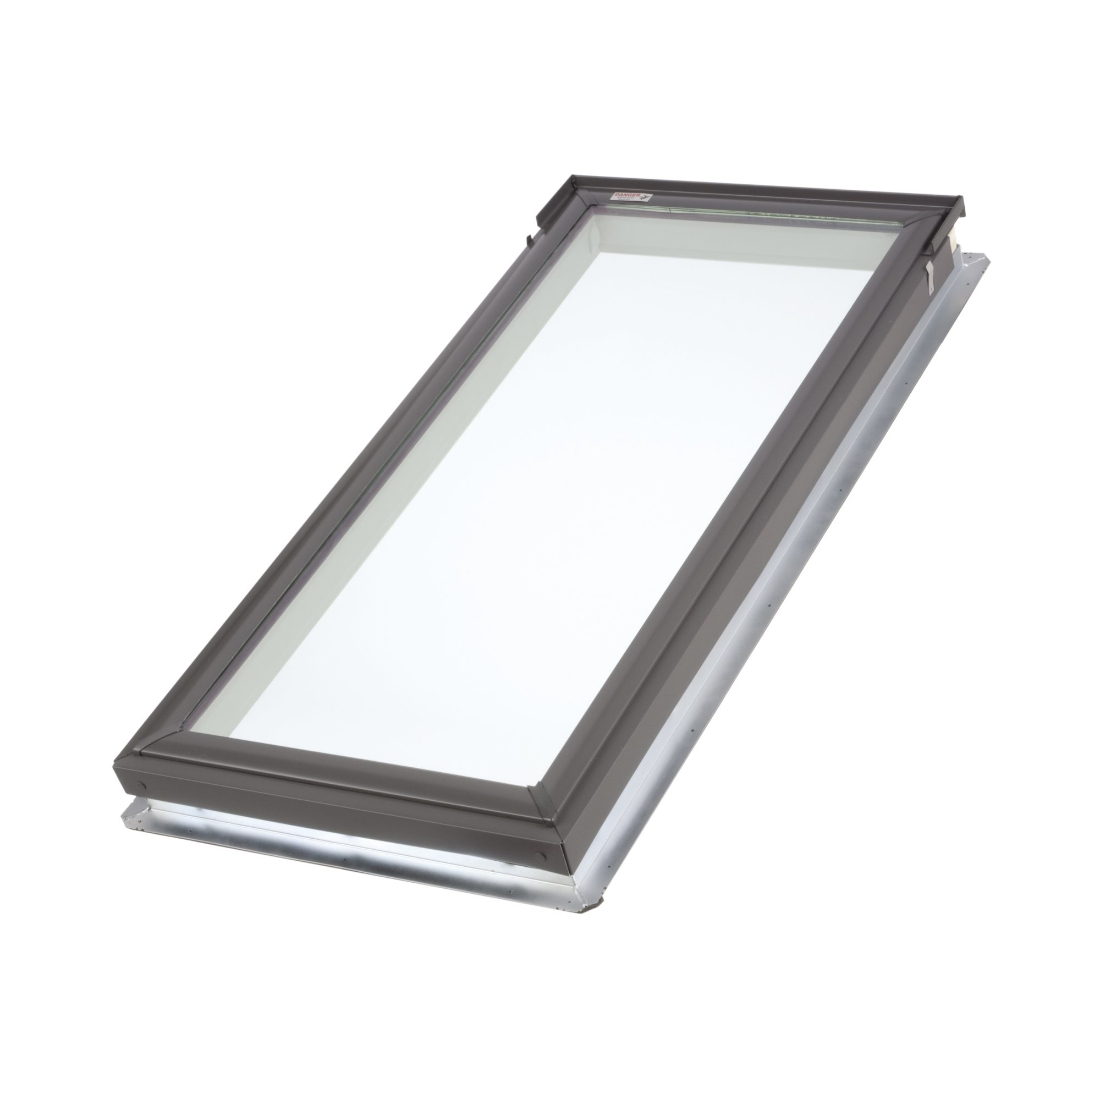 Fixed Skylight 780 x 1400mm